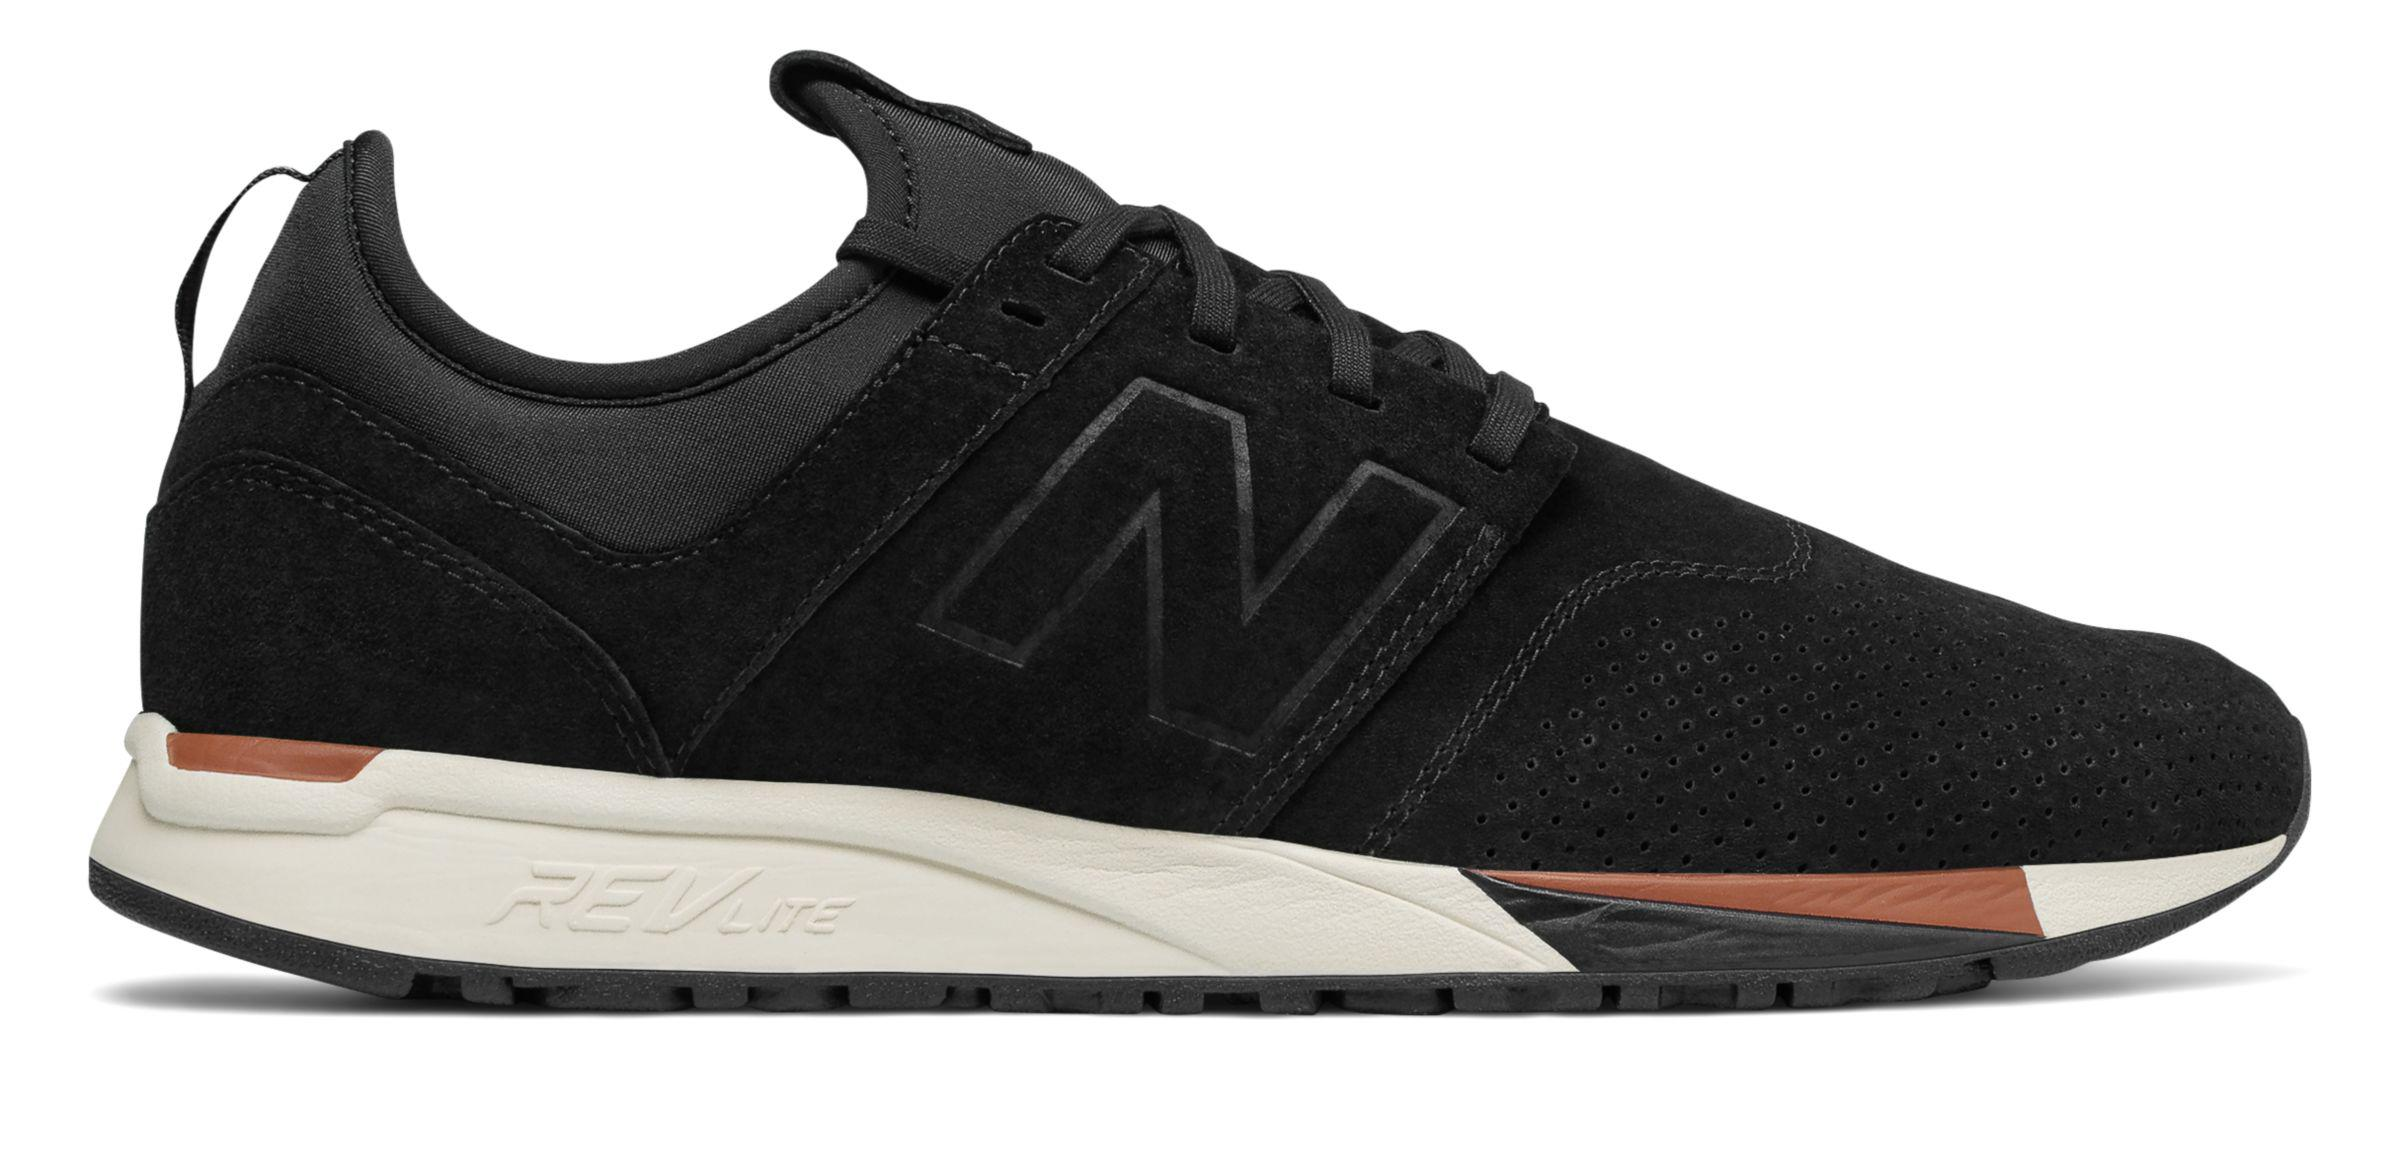 New Balance Suede Mrl 247 Wu in Black for Men - Lyst